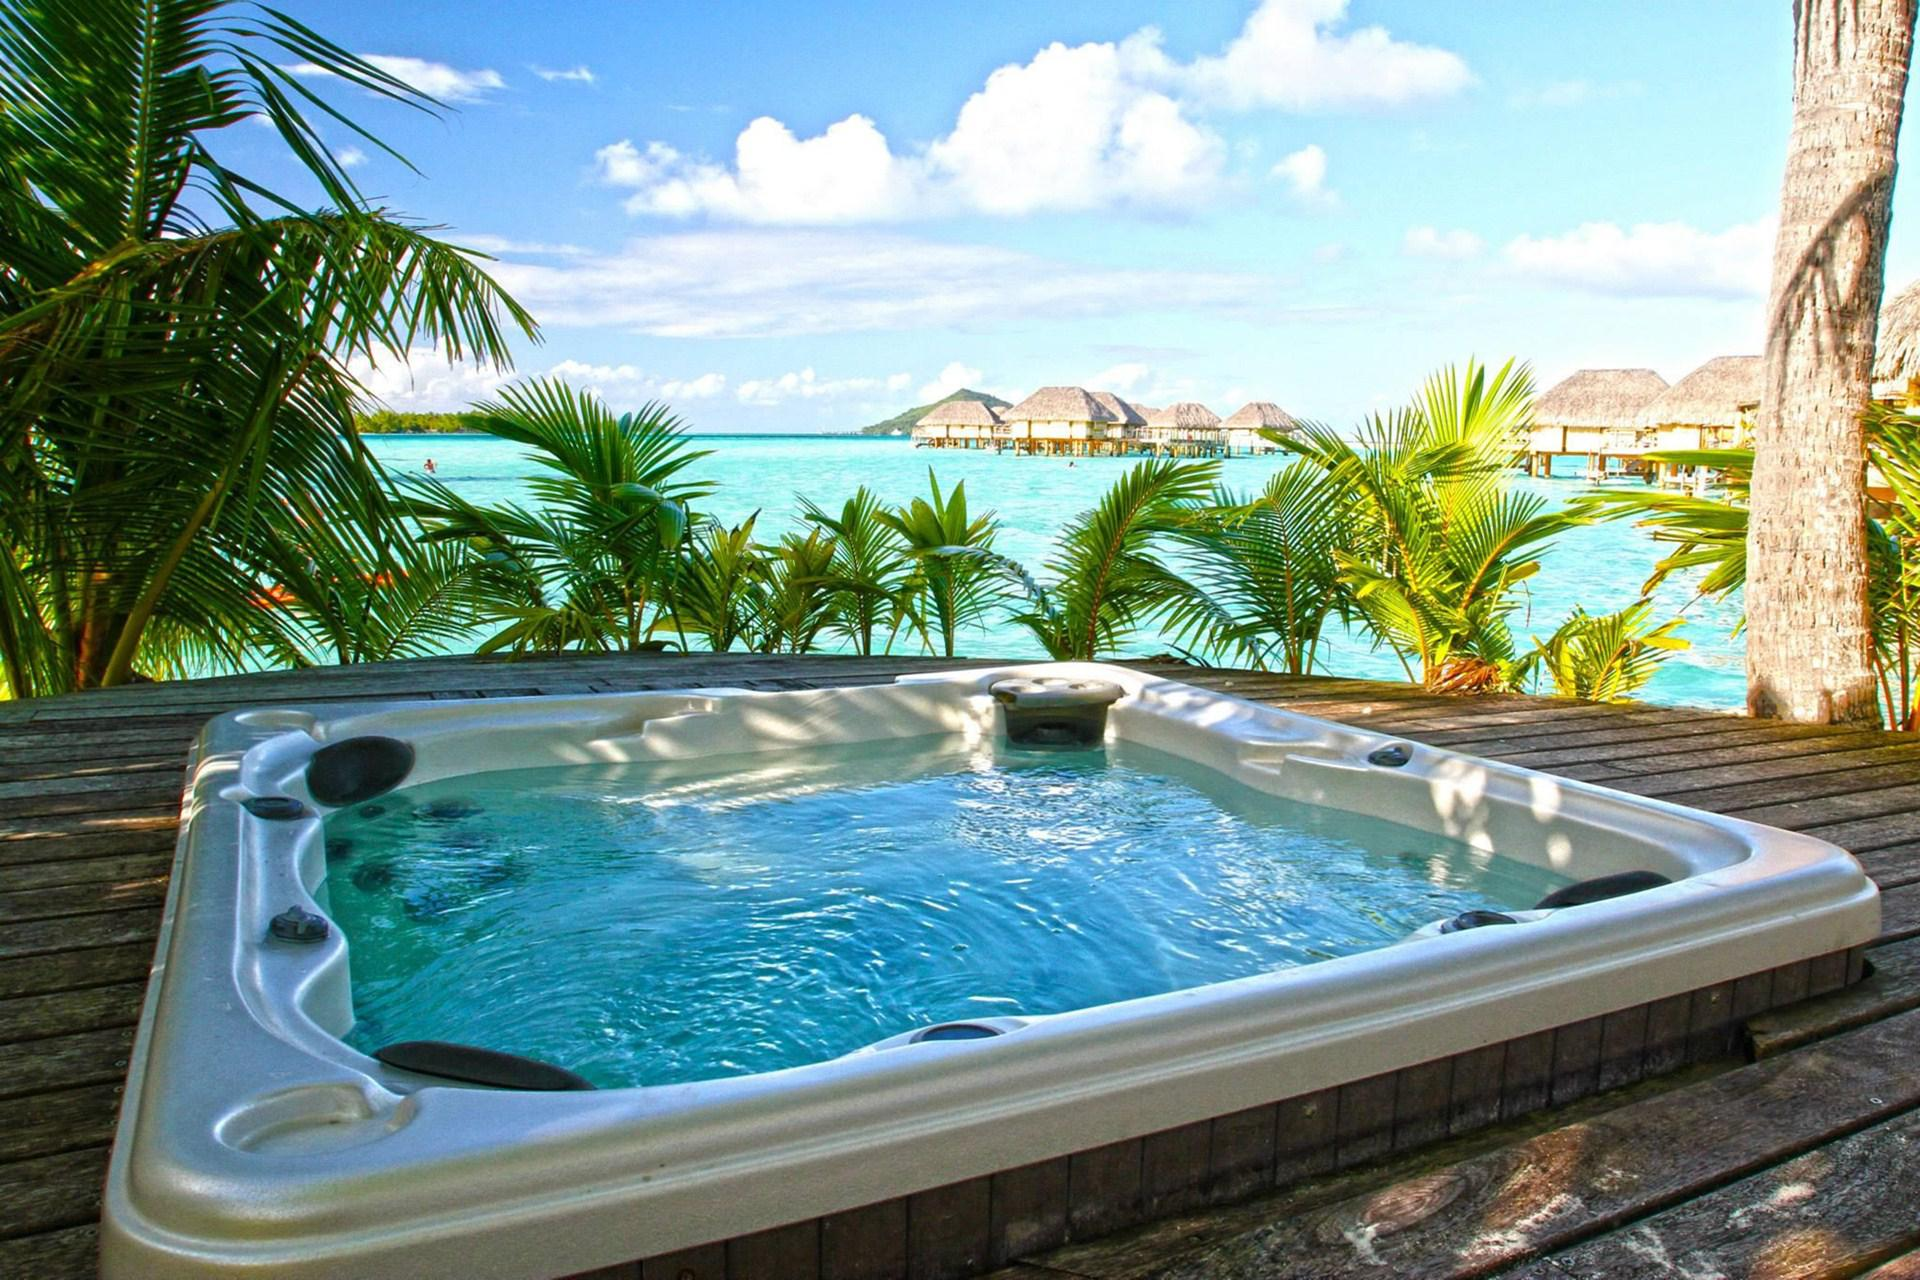 HD Hot Tub Beautiful Wallpaper Download   138935 1920x1280